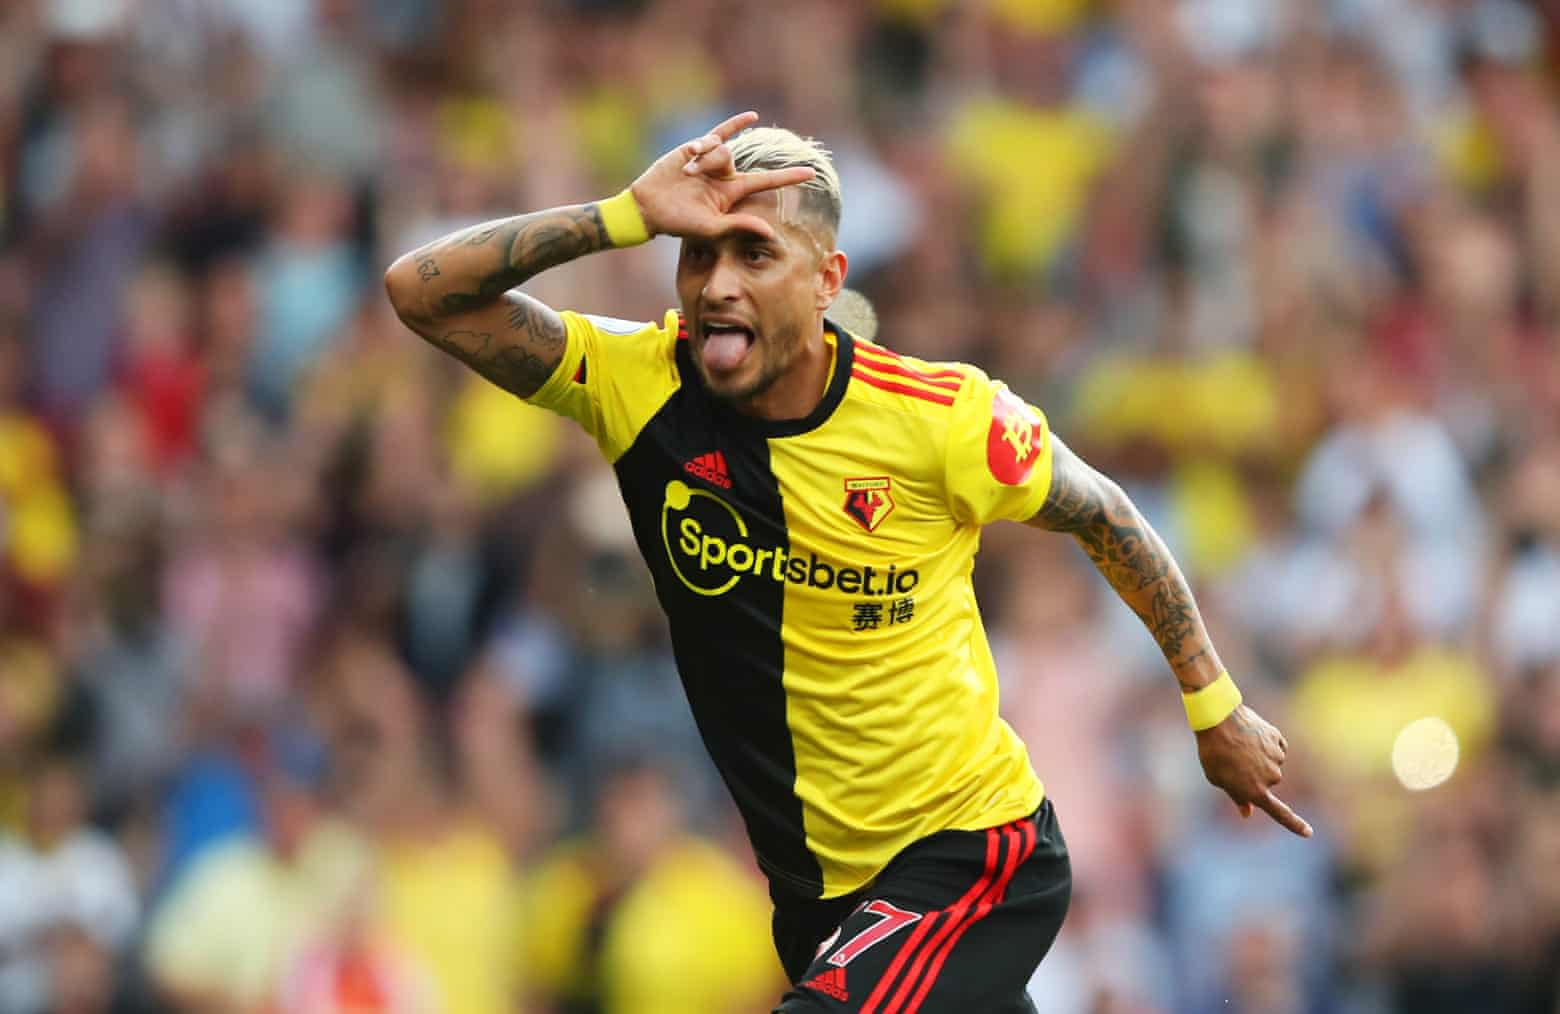 Under Watford's new coach, Pereyra scores, denying Arsenal the win